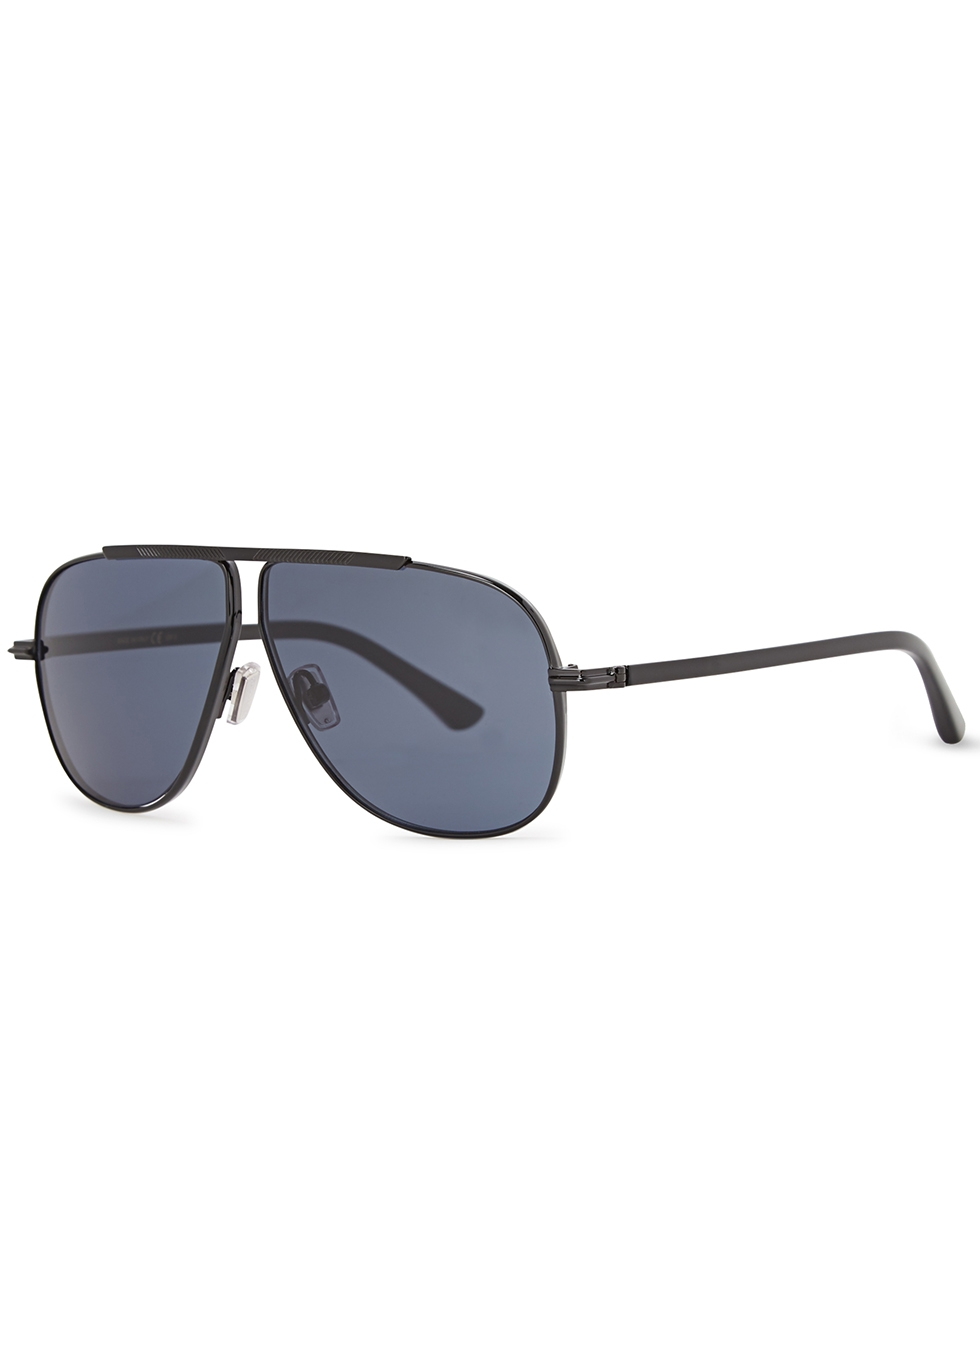 d0aeb70a92 Women s Designer Sunglasses and Eyewear - Harvey Nichols